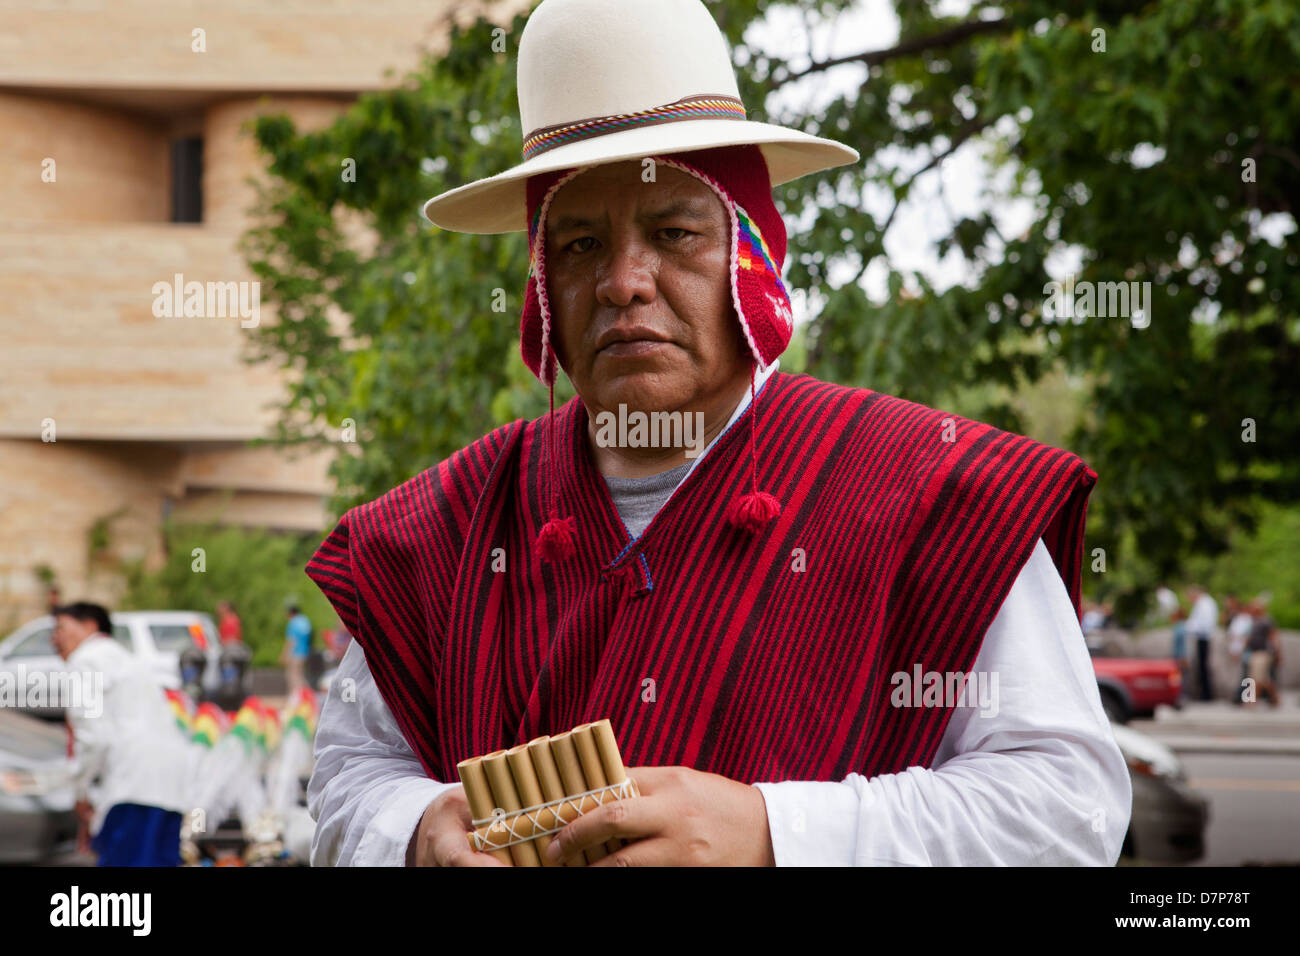 Traditional Bolivian pan flute player - Stock Image